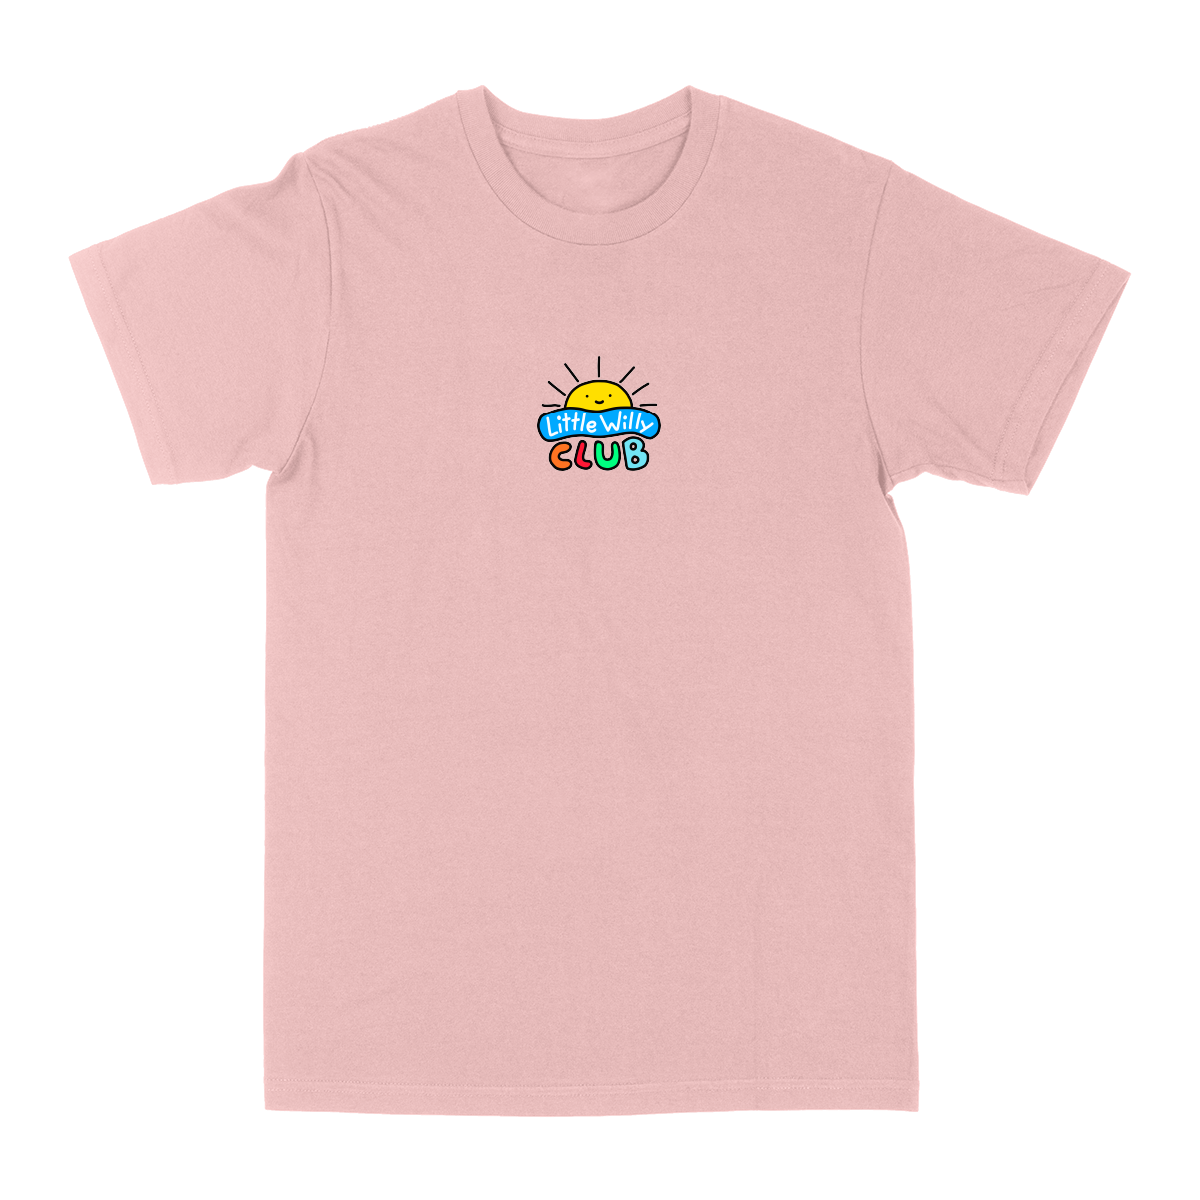 Willy Tee - Pink